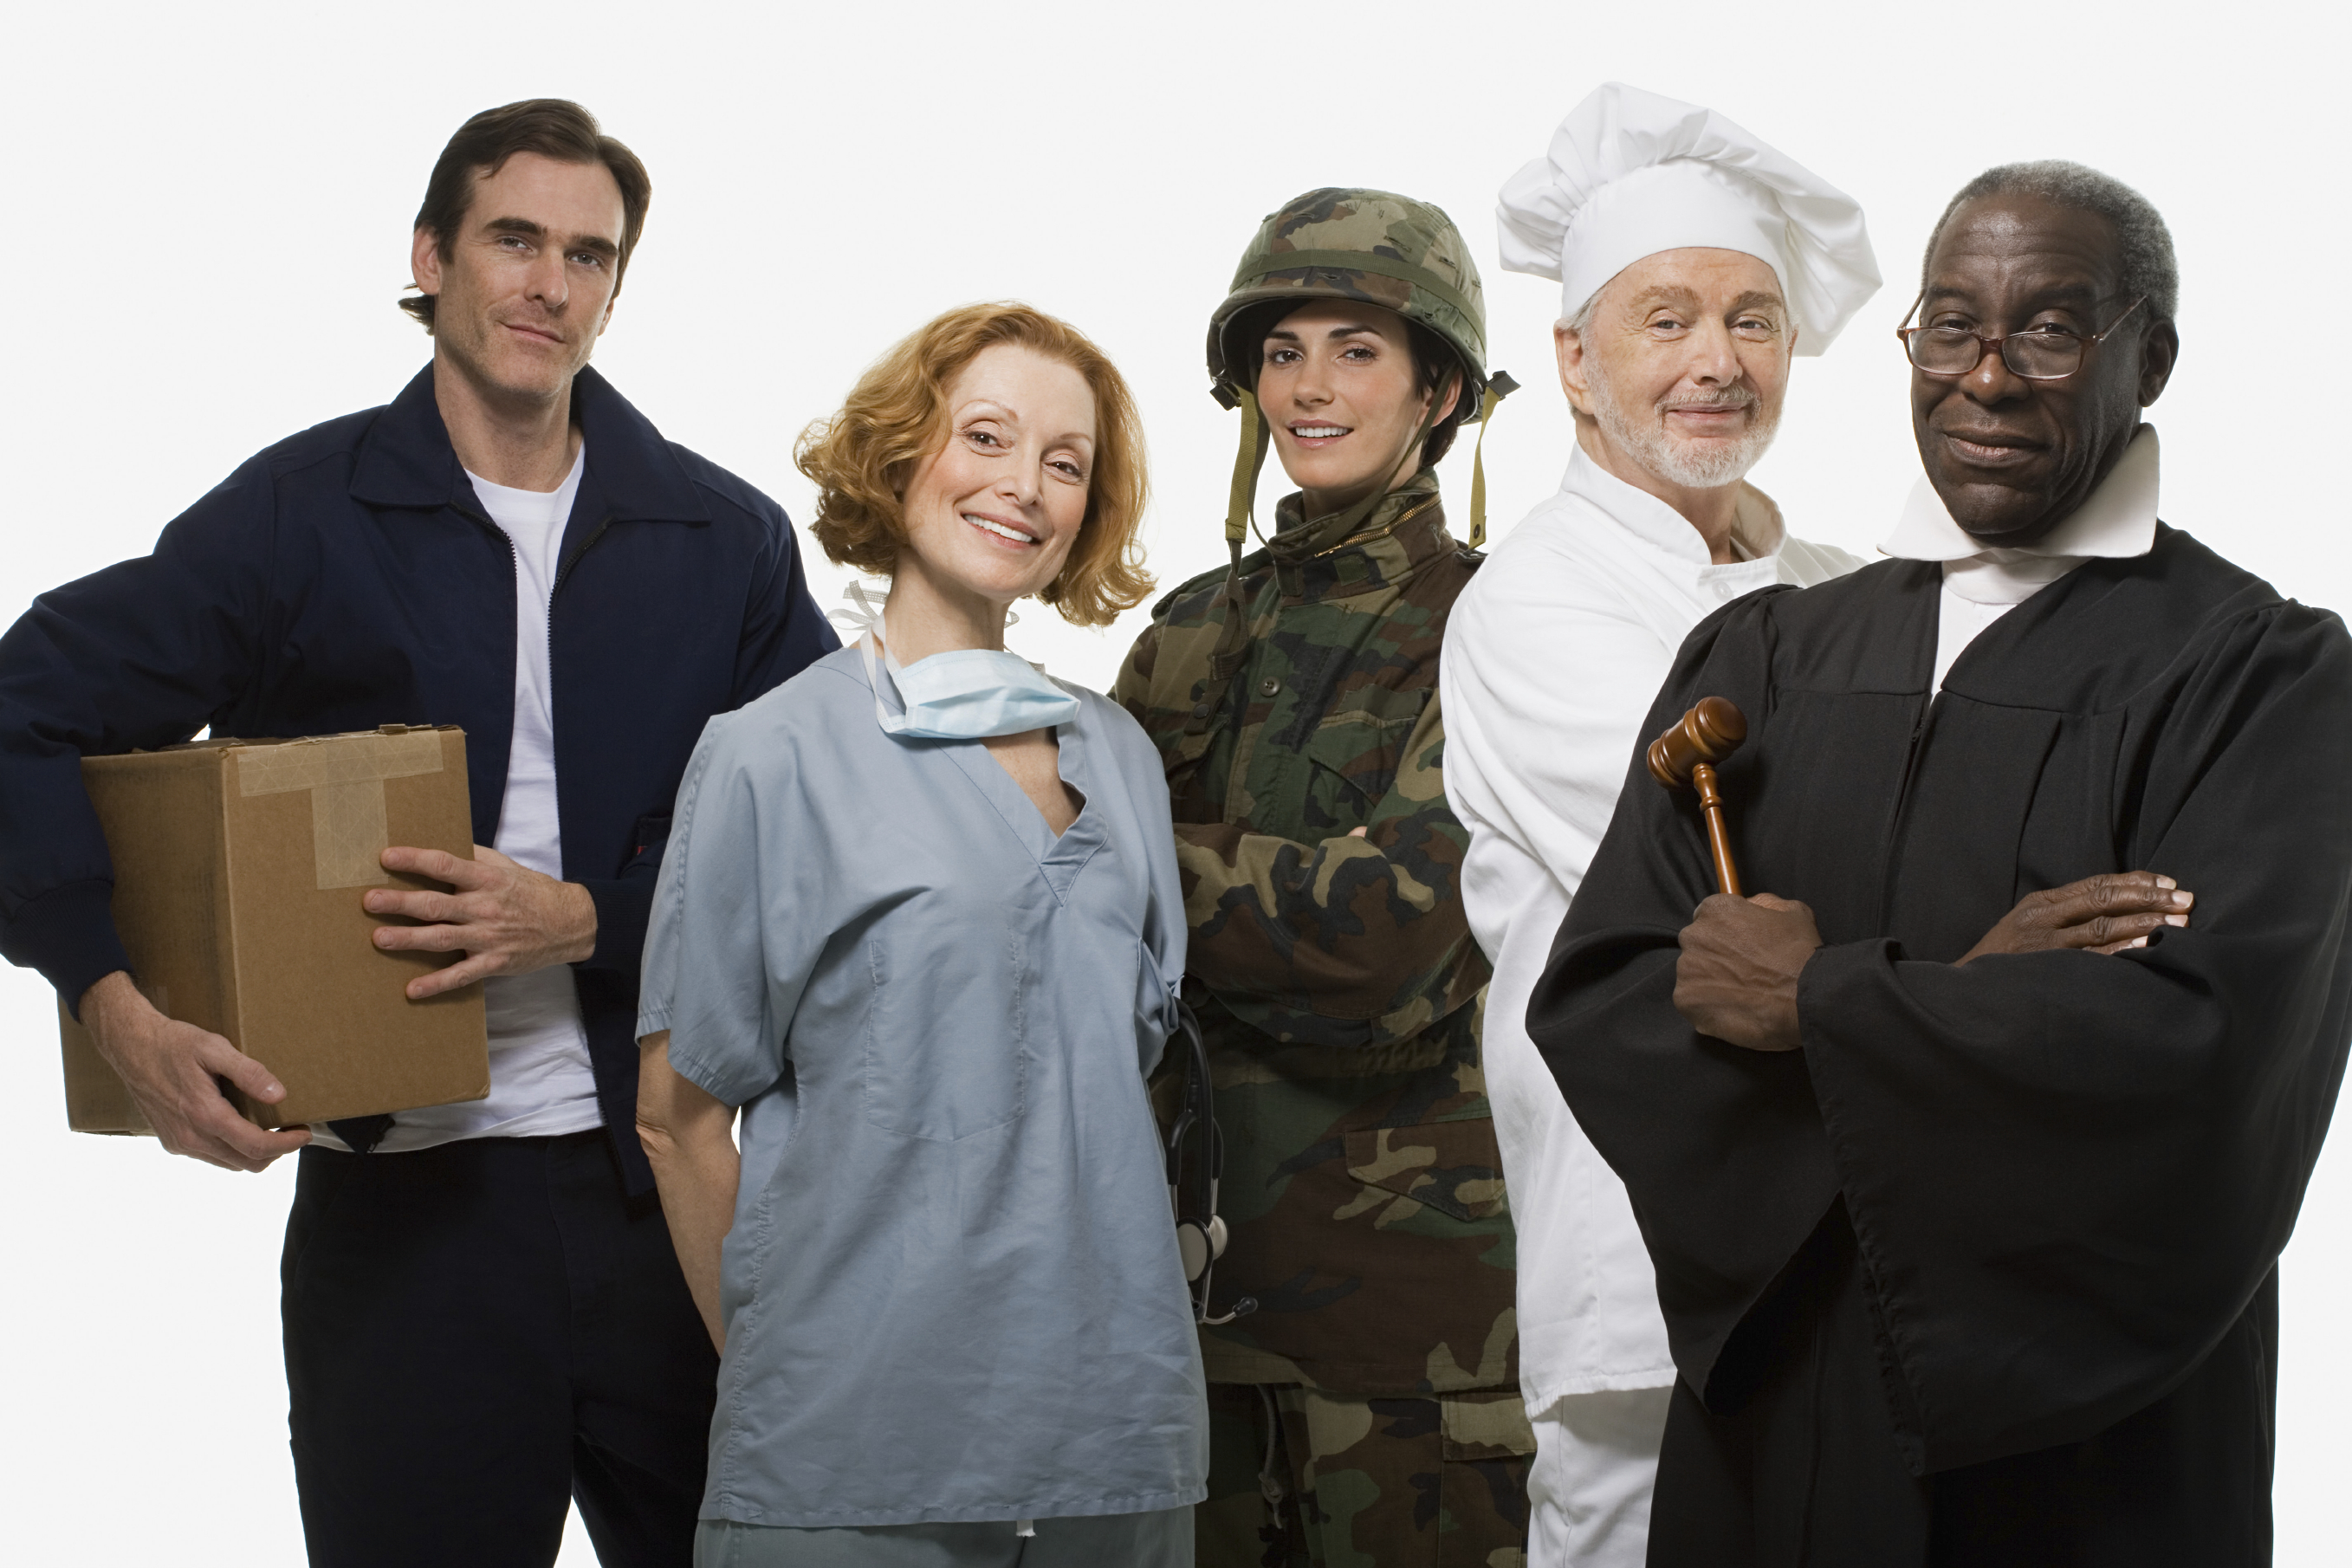 Delivery man, Surgeon, Soldier, Chef, and Judge.jpg